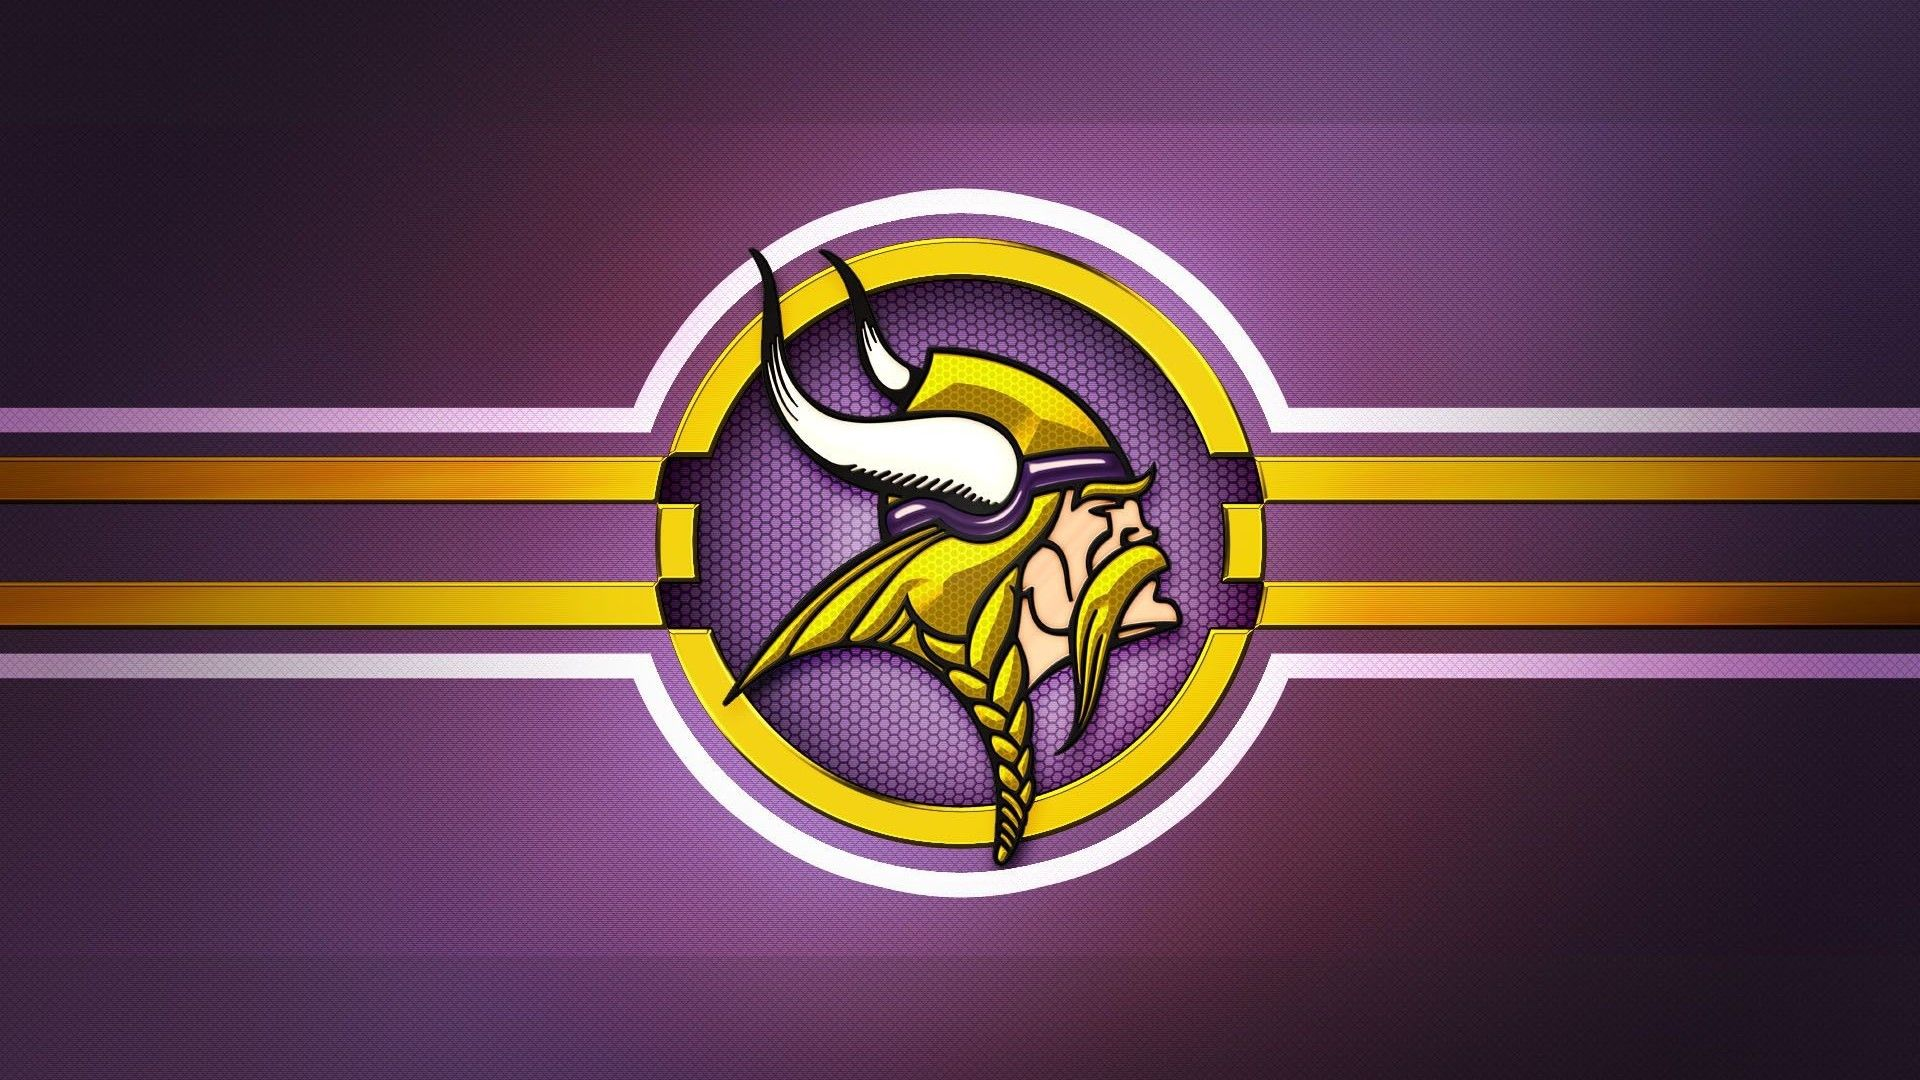 Minnesota Vikings Wallpaper HD Minnesota vikings logo